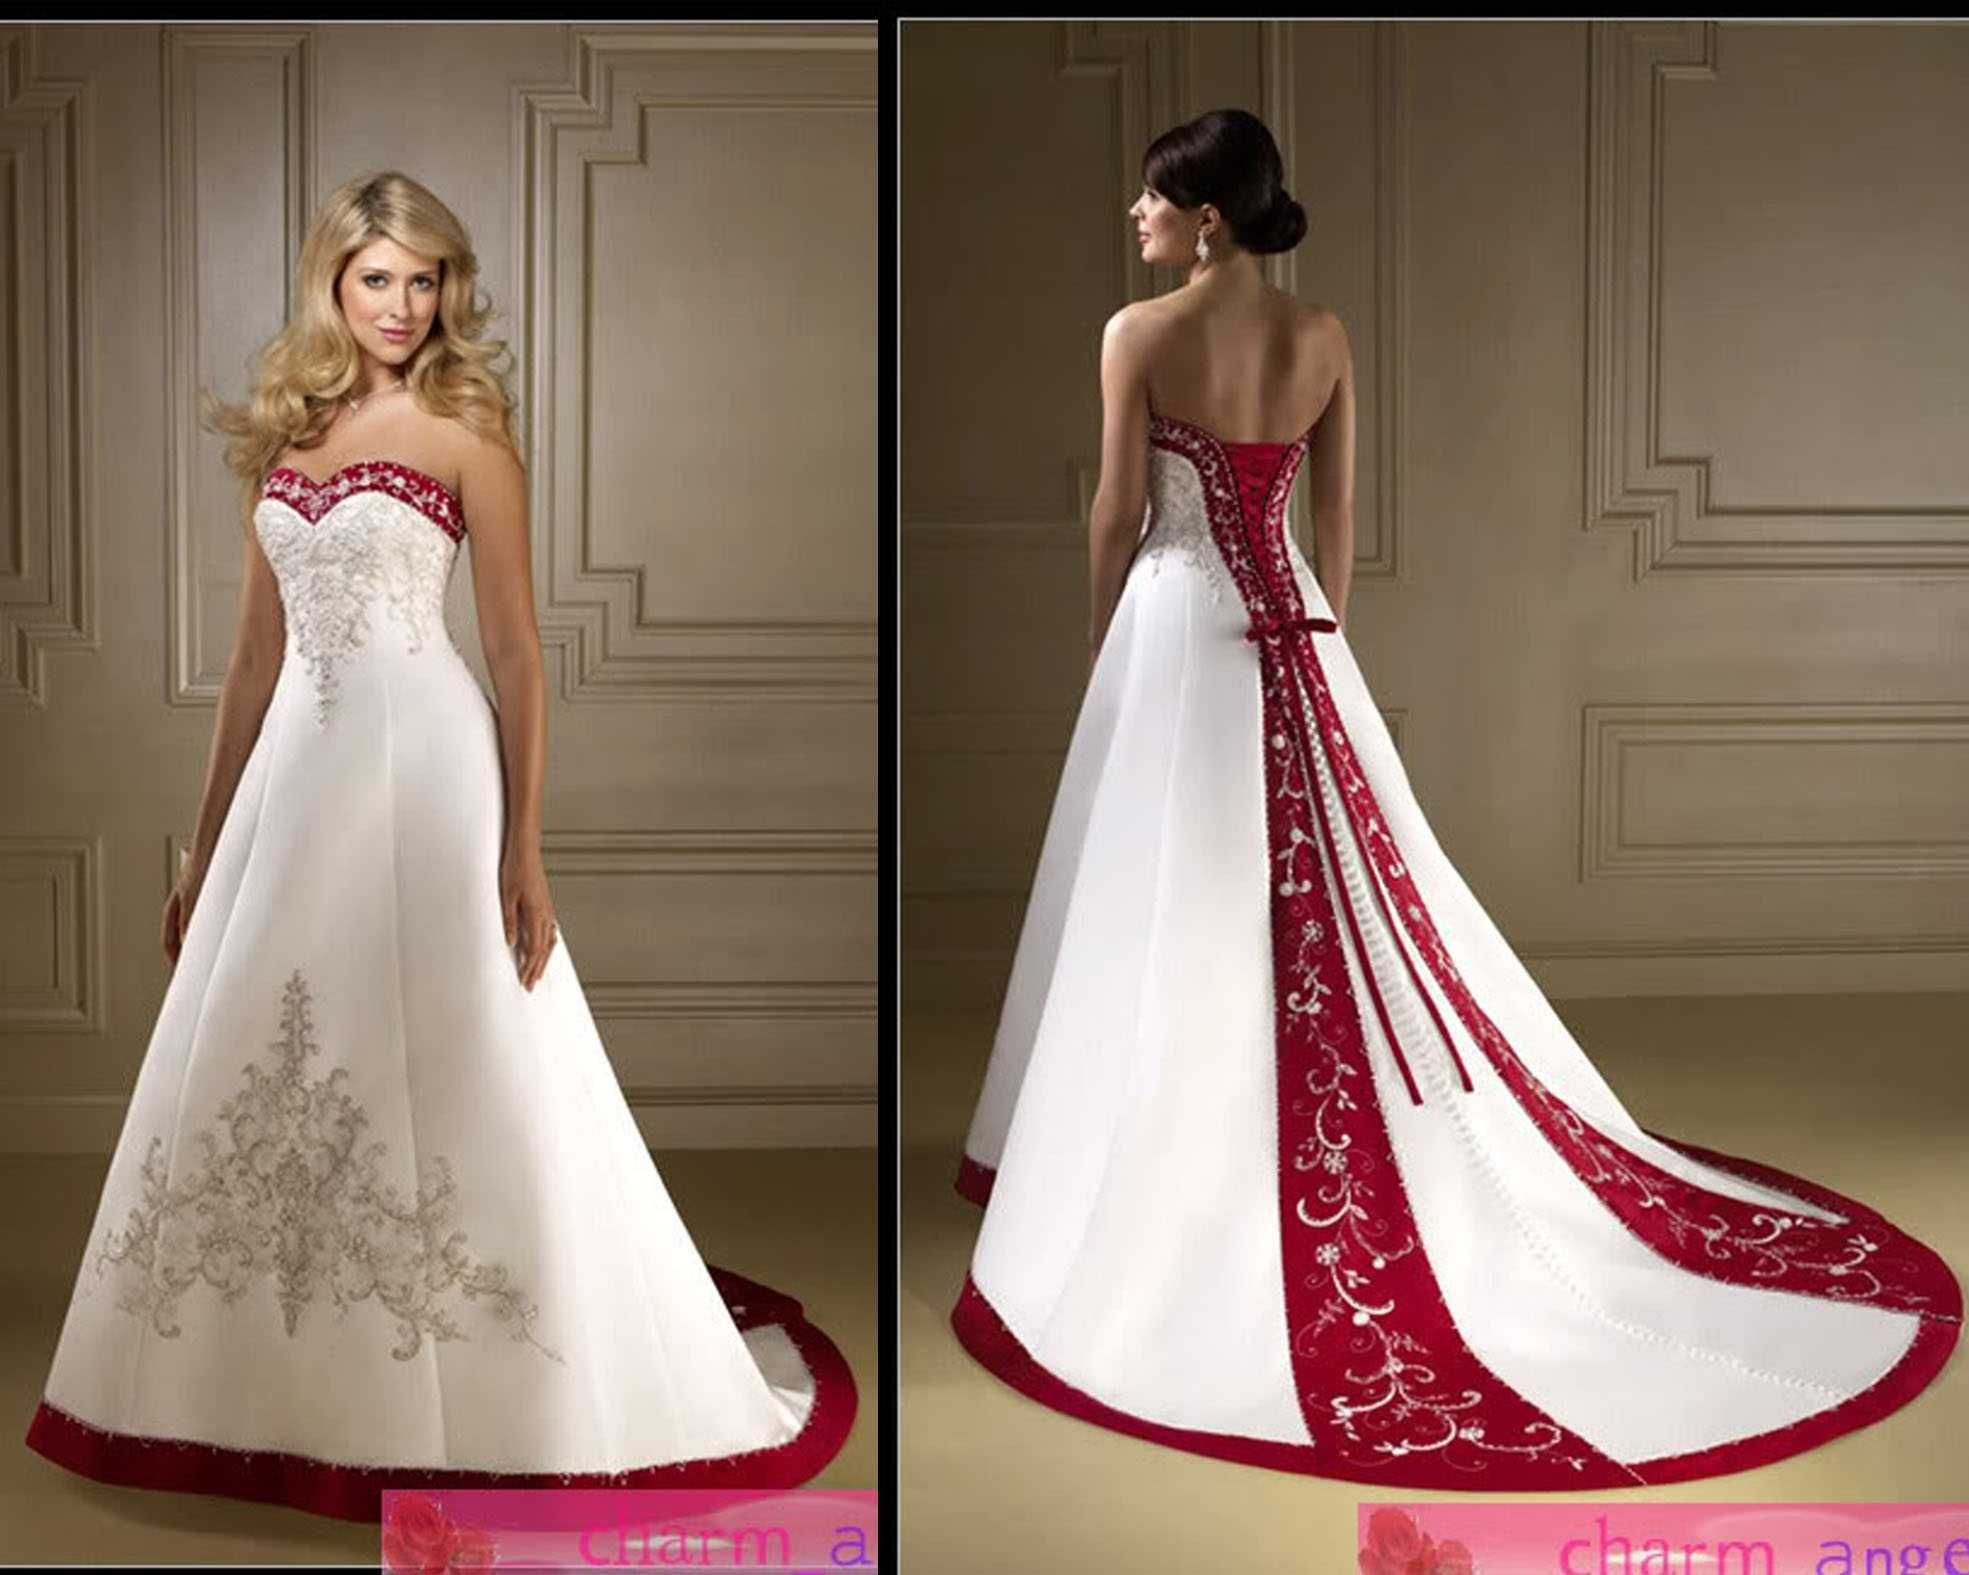 Lightinthebox wedding dresses  Inspirational Has Anyone Bought A Wedding Dress From China